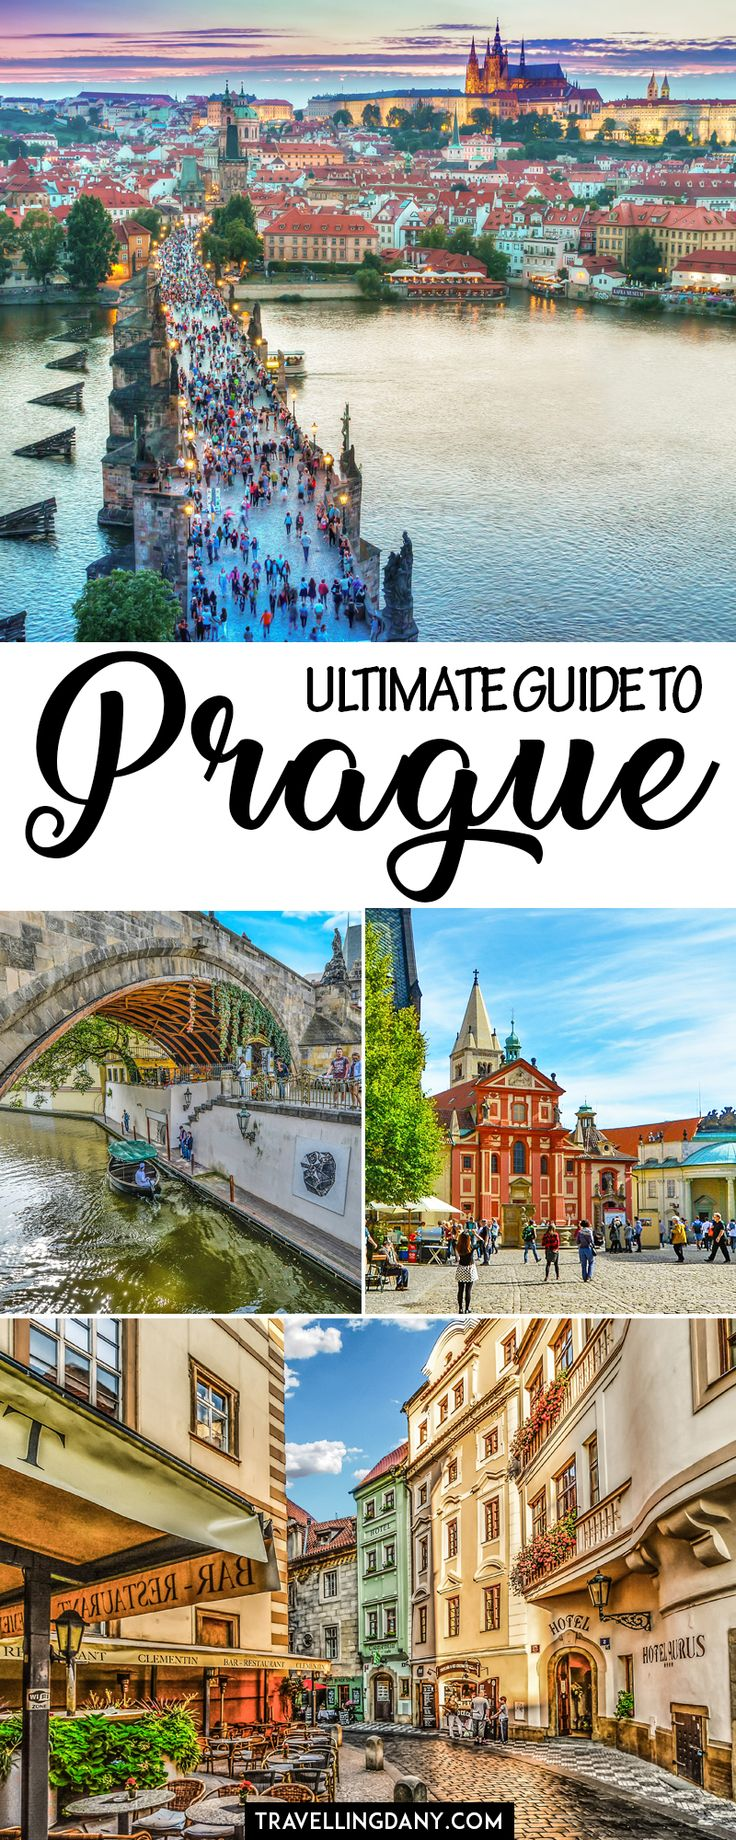 Ultimate guide to Prague, capital of the Czech Republic. Includes a handy daily itinerary with tips and tricks for 2, 3, 4 or more days. Bonus: day trips from Prague! | #prague #europeantrip #europe #Czechrepublic #europeancountries